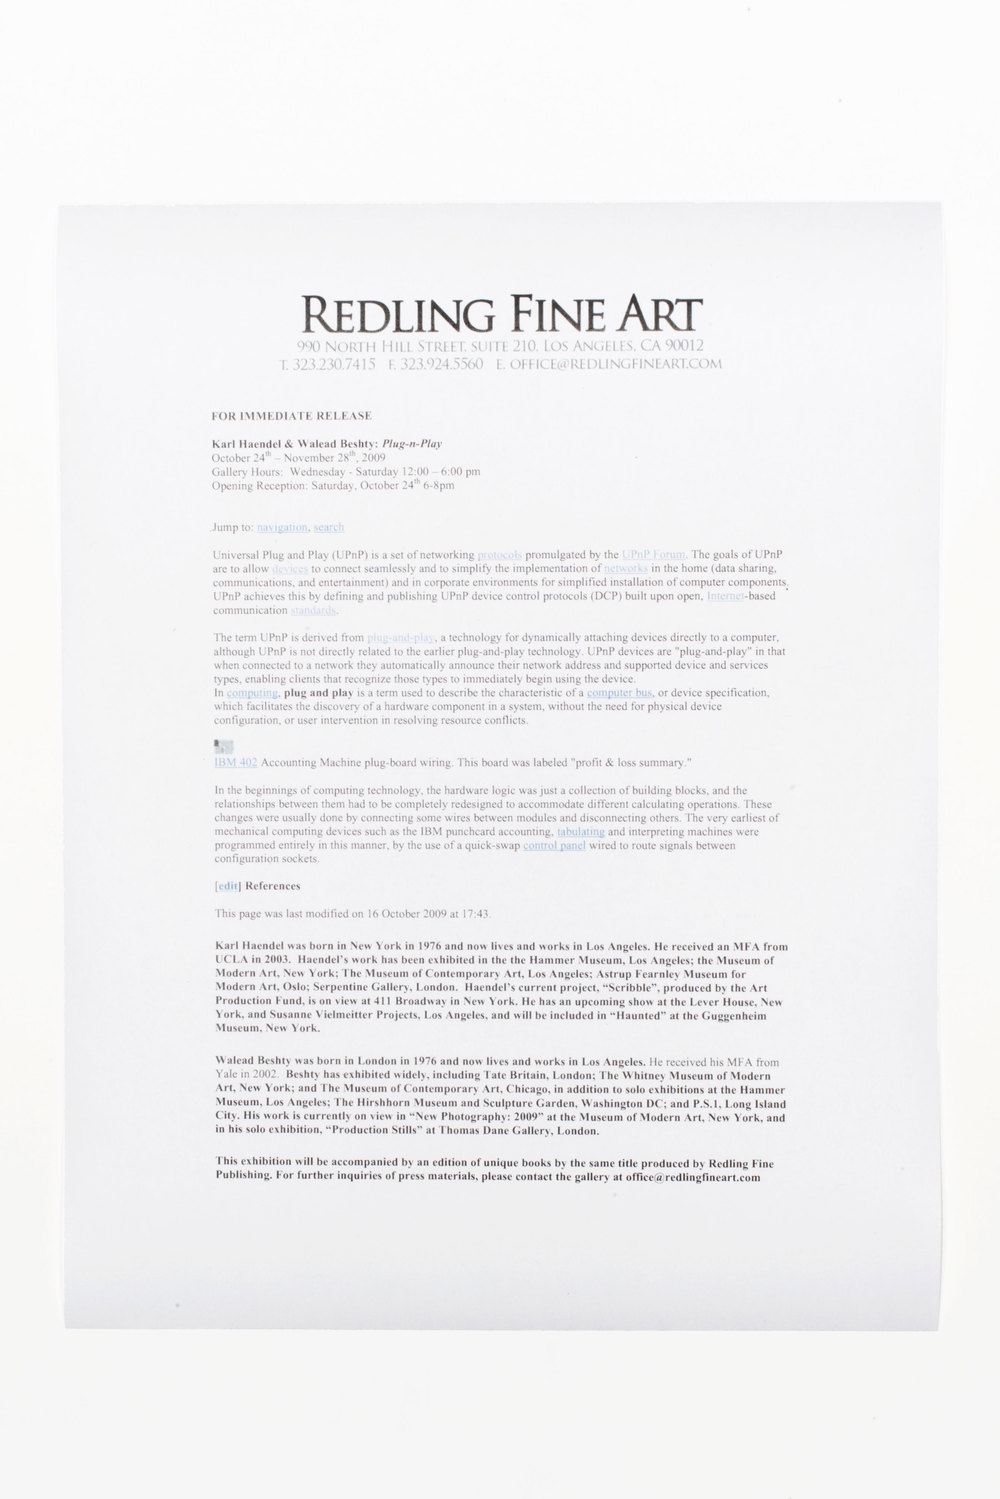 Plug n Play press release   With Karl Haendel  Redling Fine Art  Los Angeles  California  2009